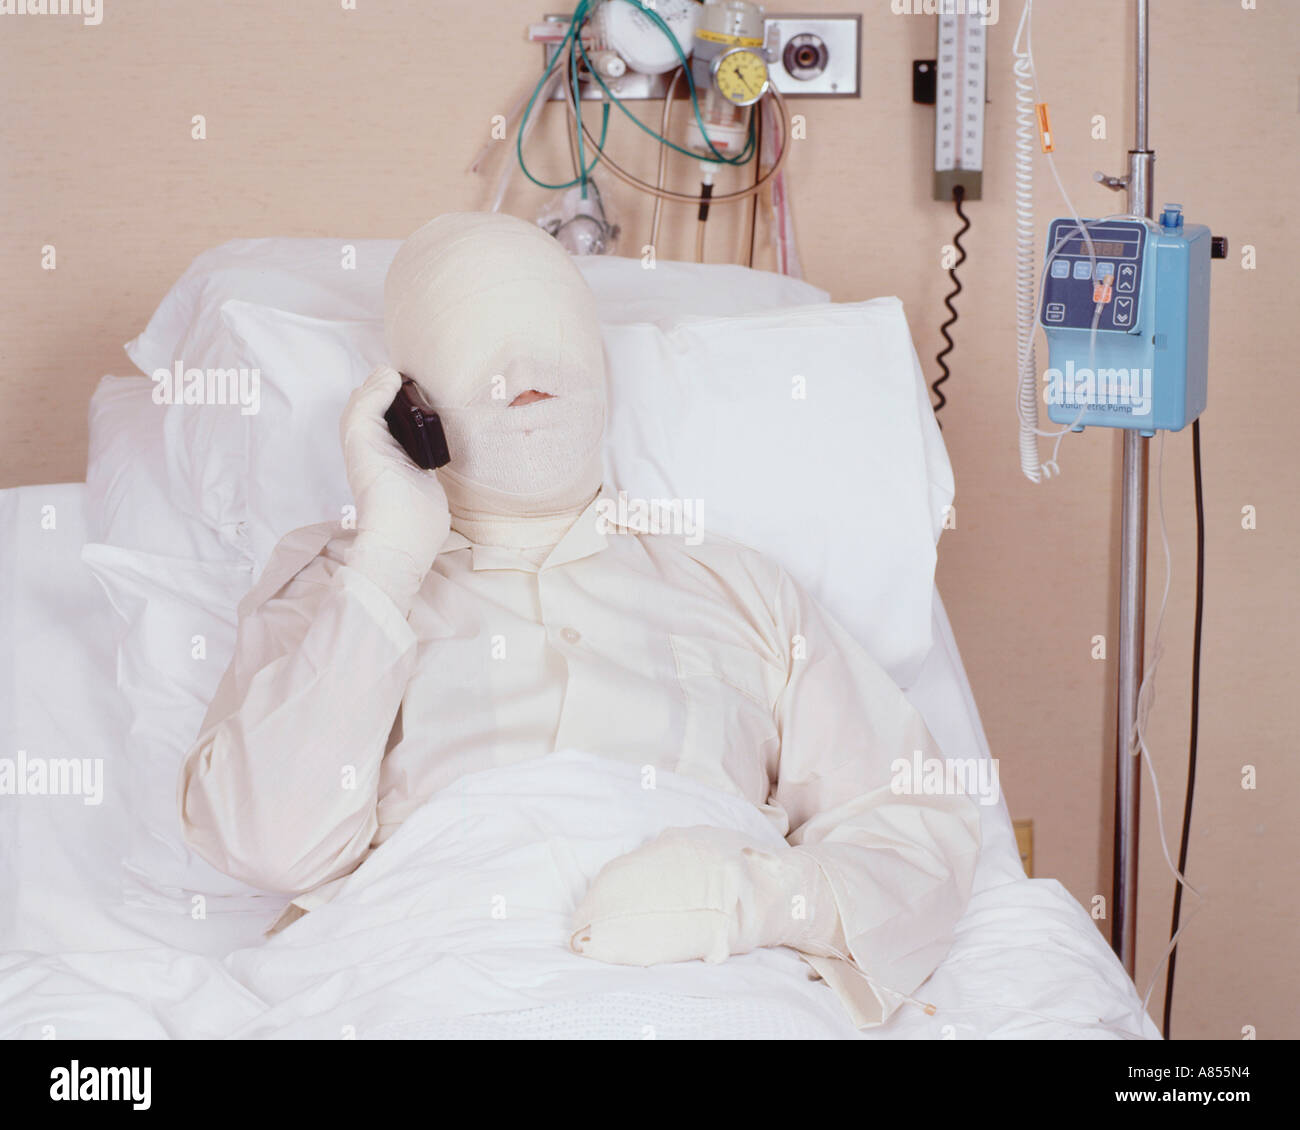 closeup of male patient in hospital bed with serious